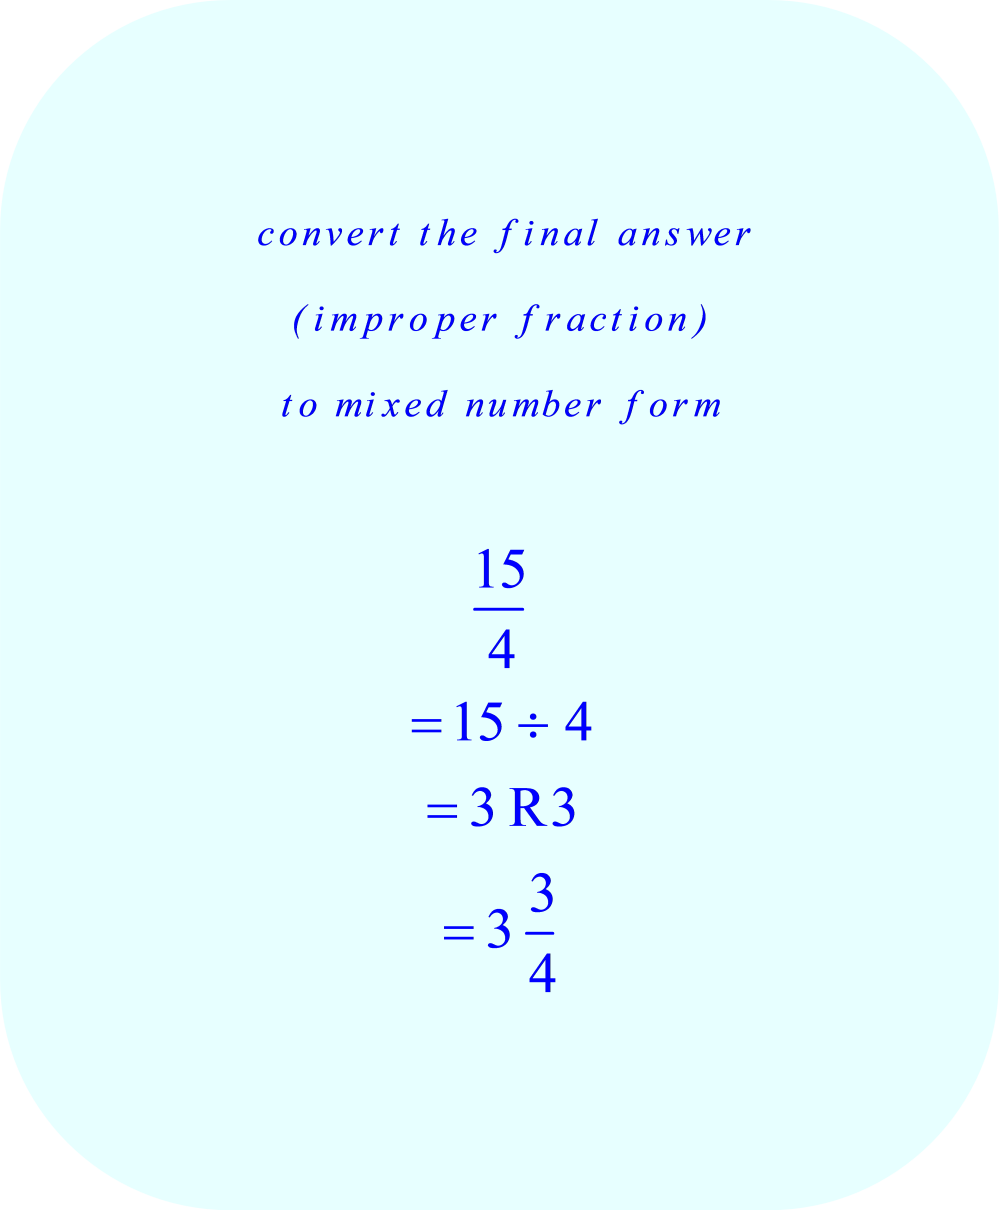 Convert the final answer (improper faction) to mixed number form